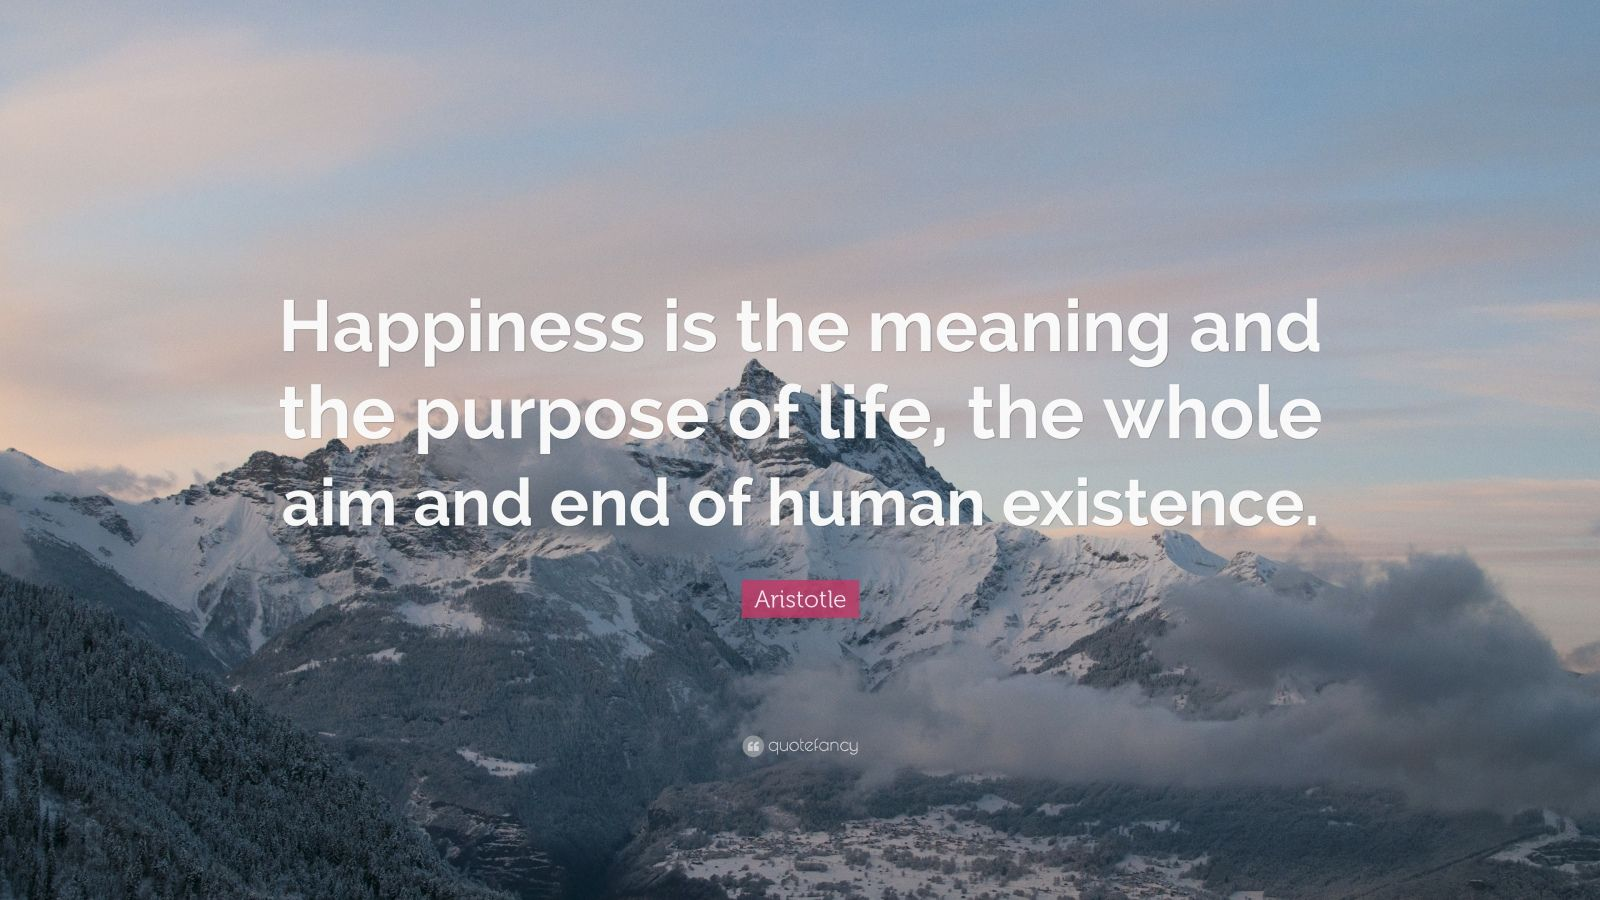 Meaning of Life Quote Aristotle